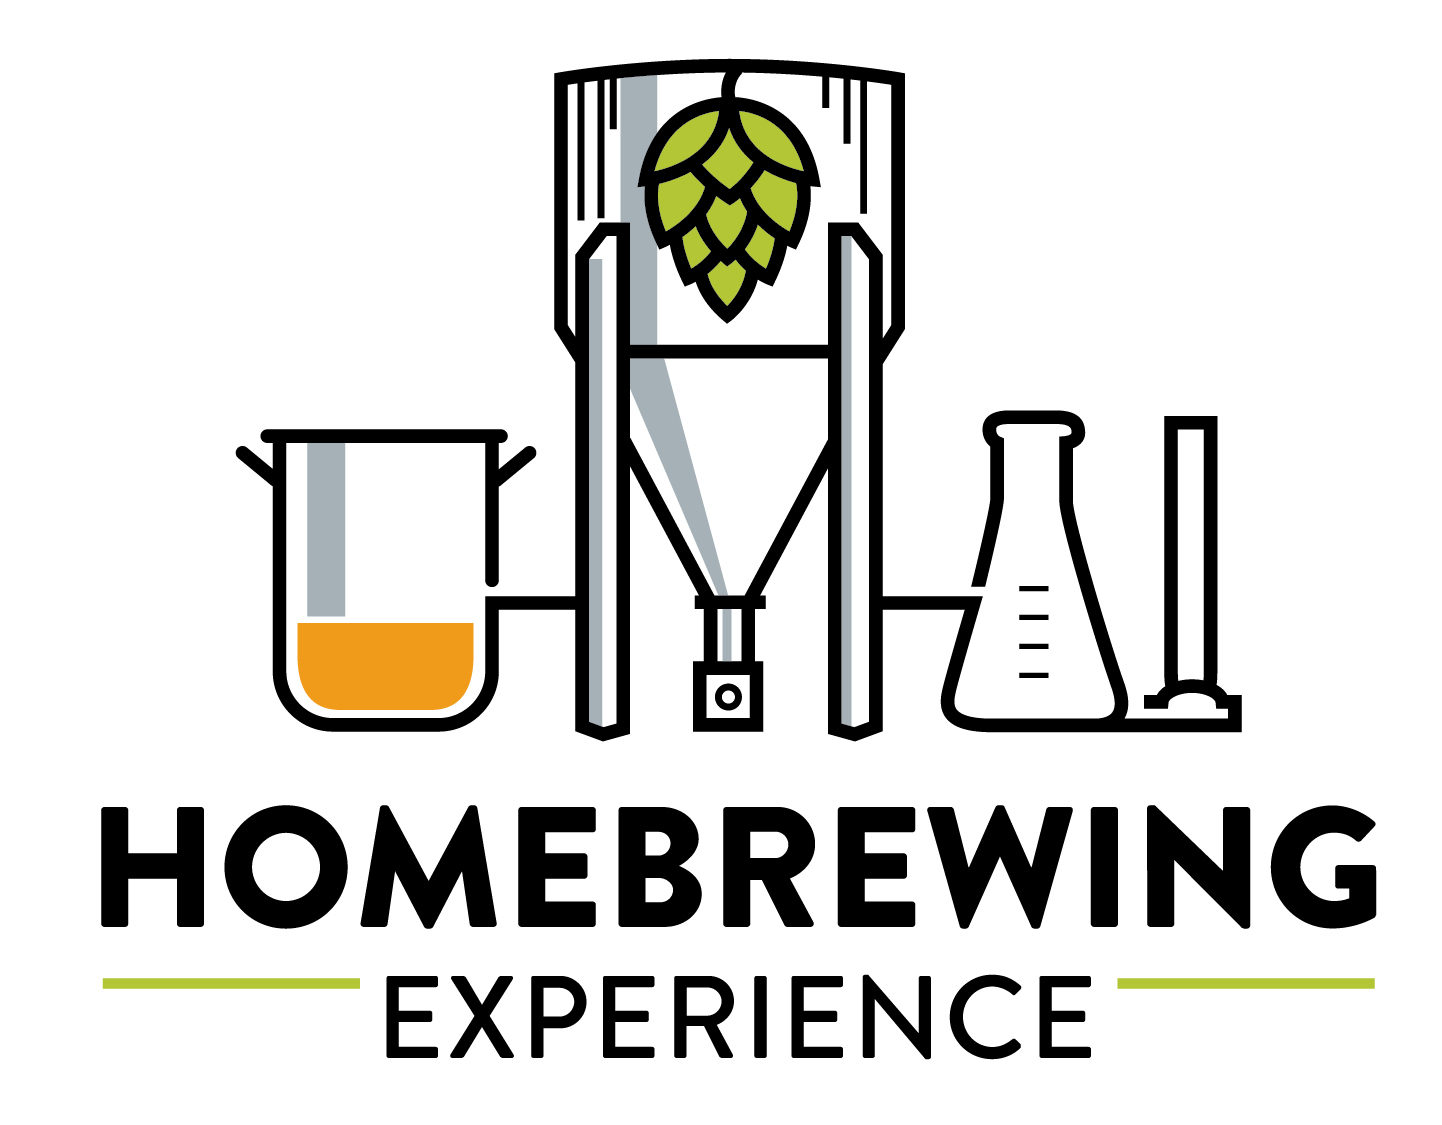 HOMEBREWING EXPERIENCE